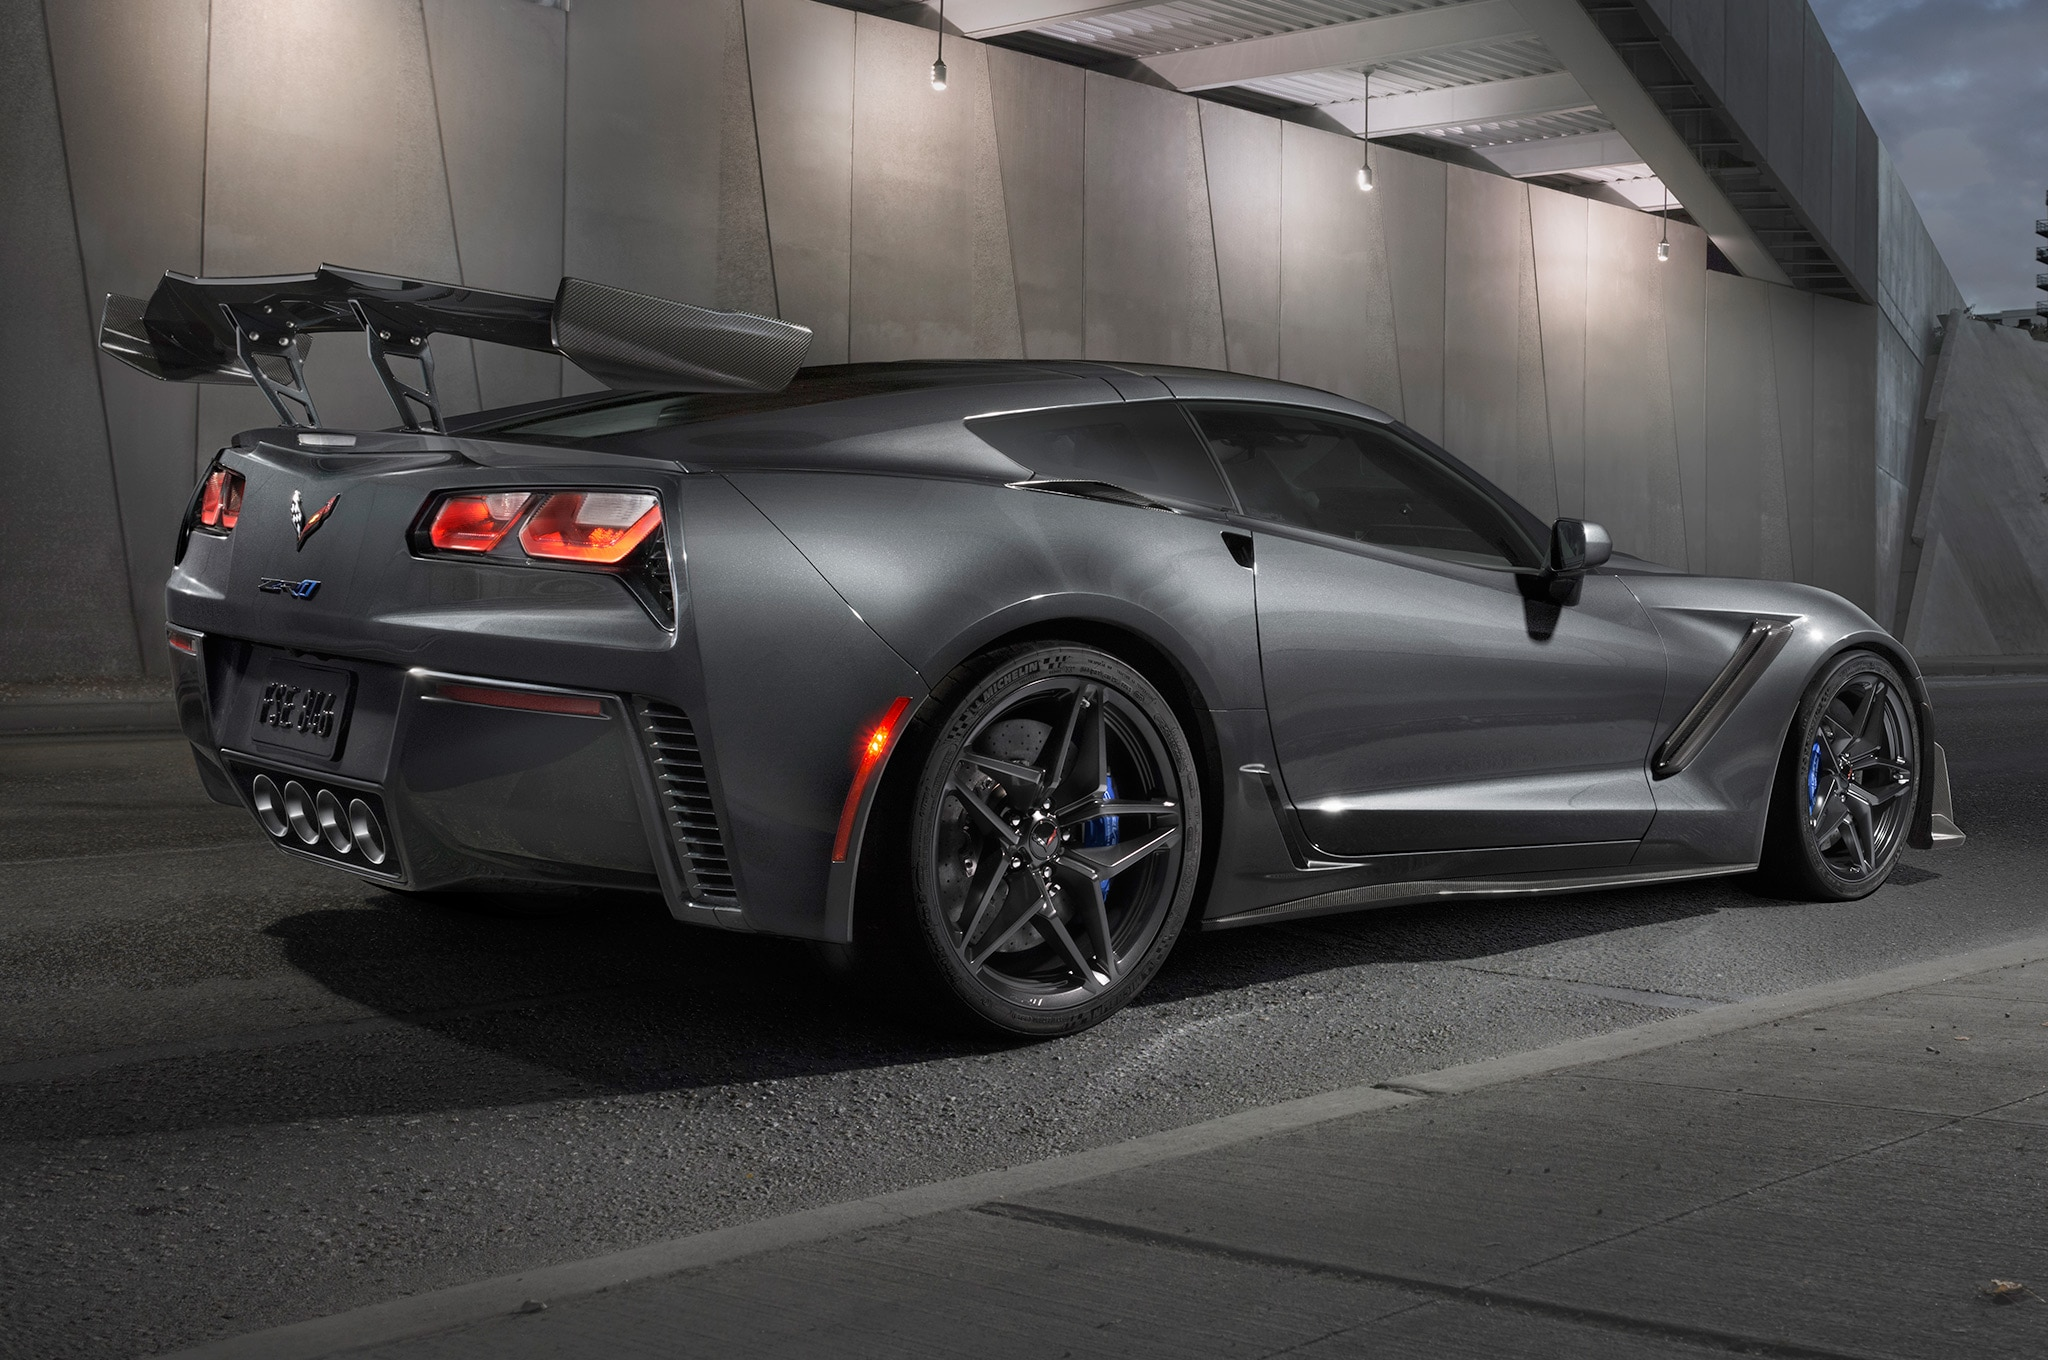 Meet Chevy's 2019 Corvette ZR1, the fastest Corvette ever made